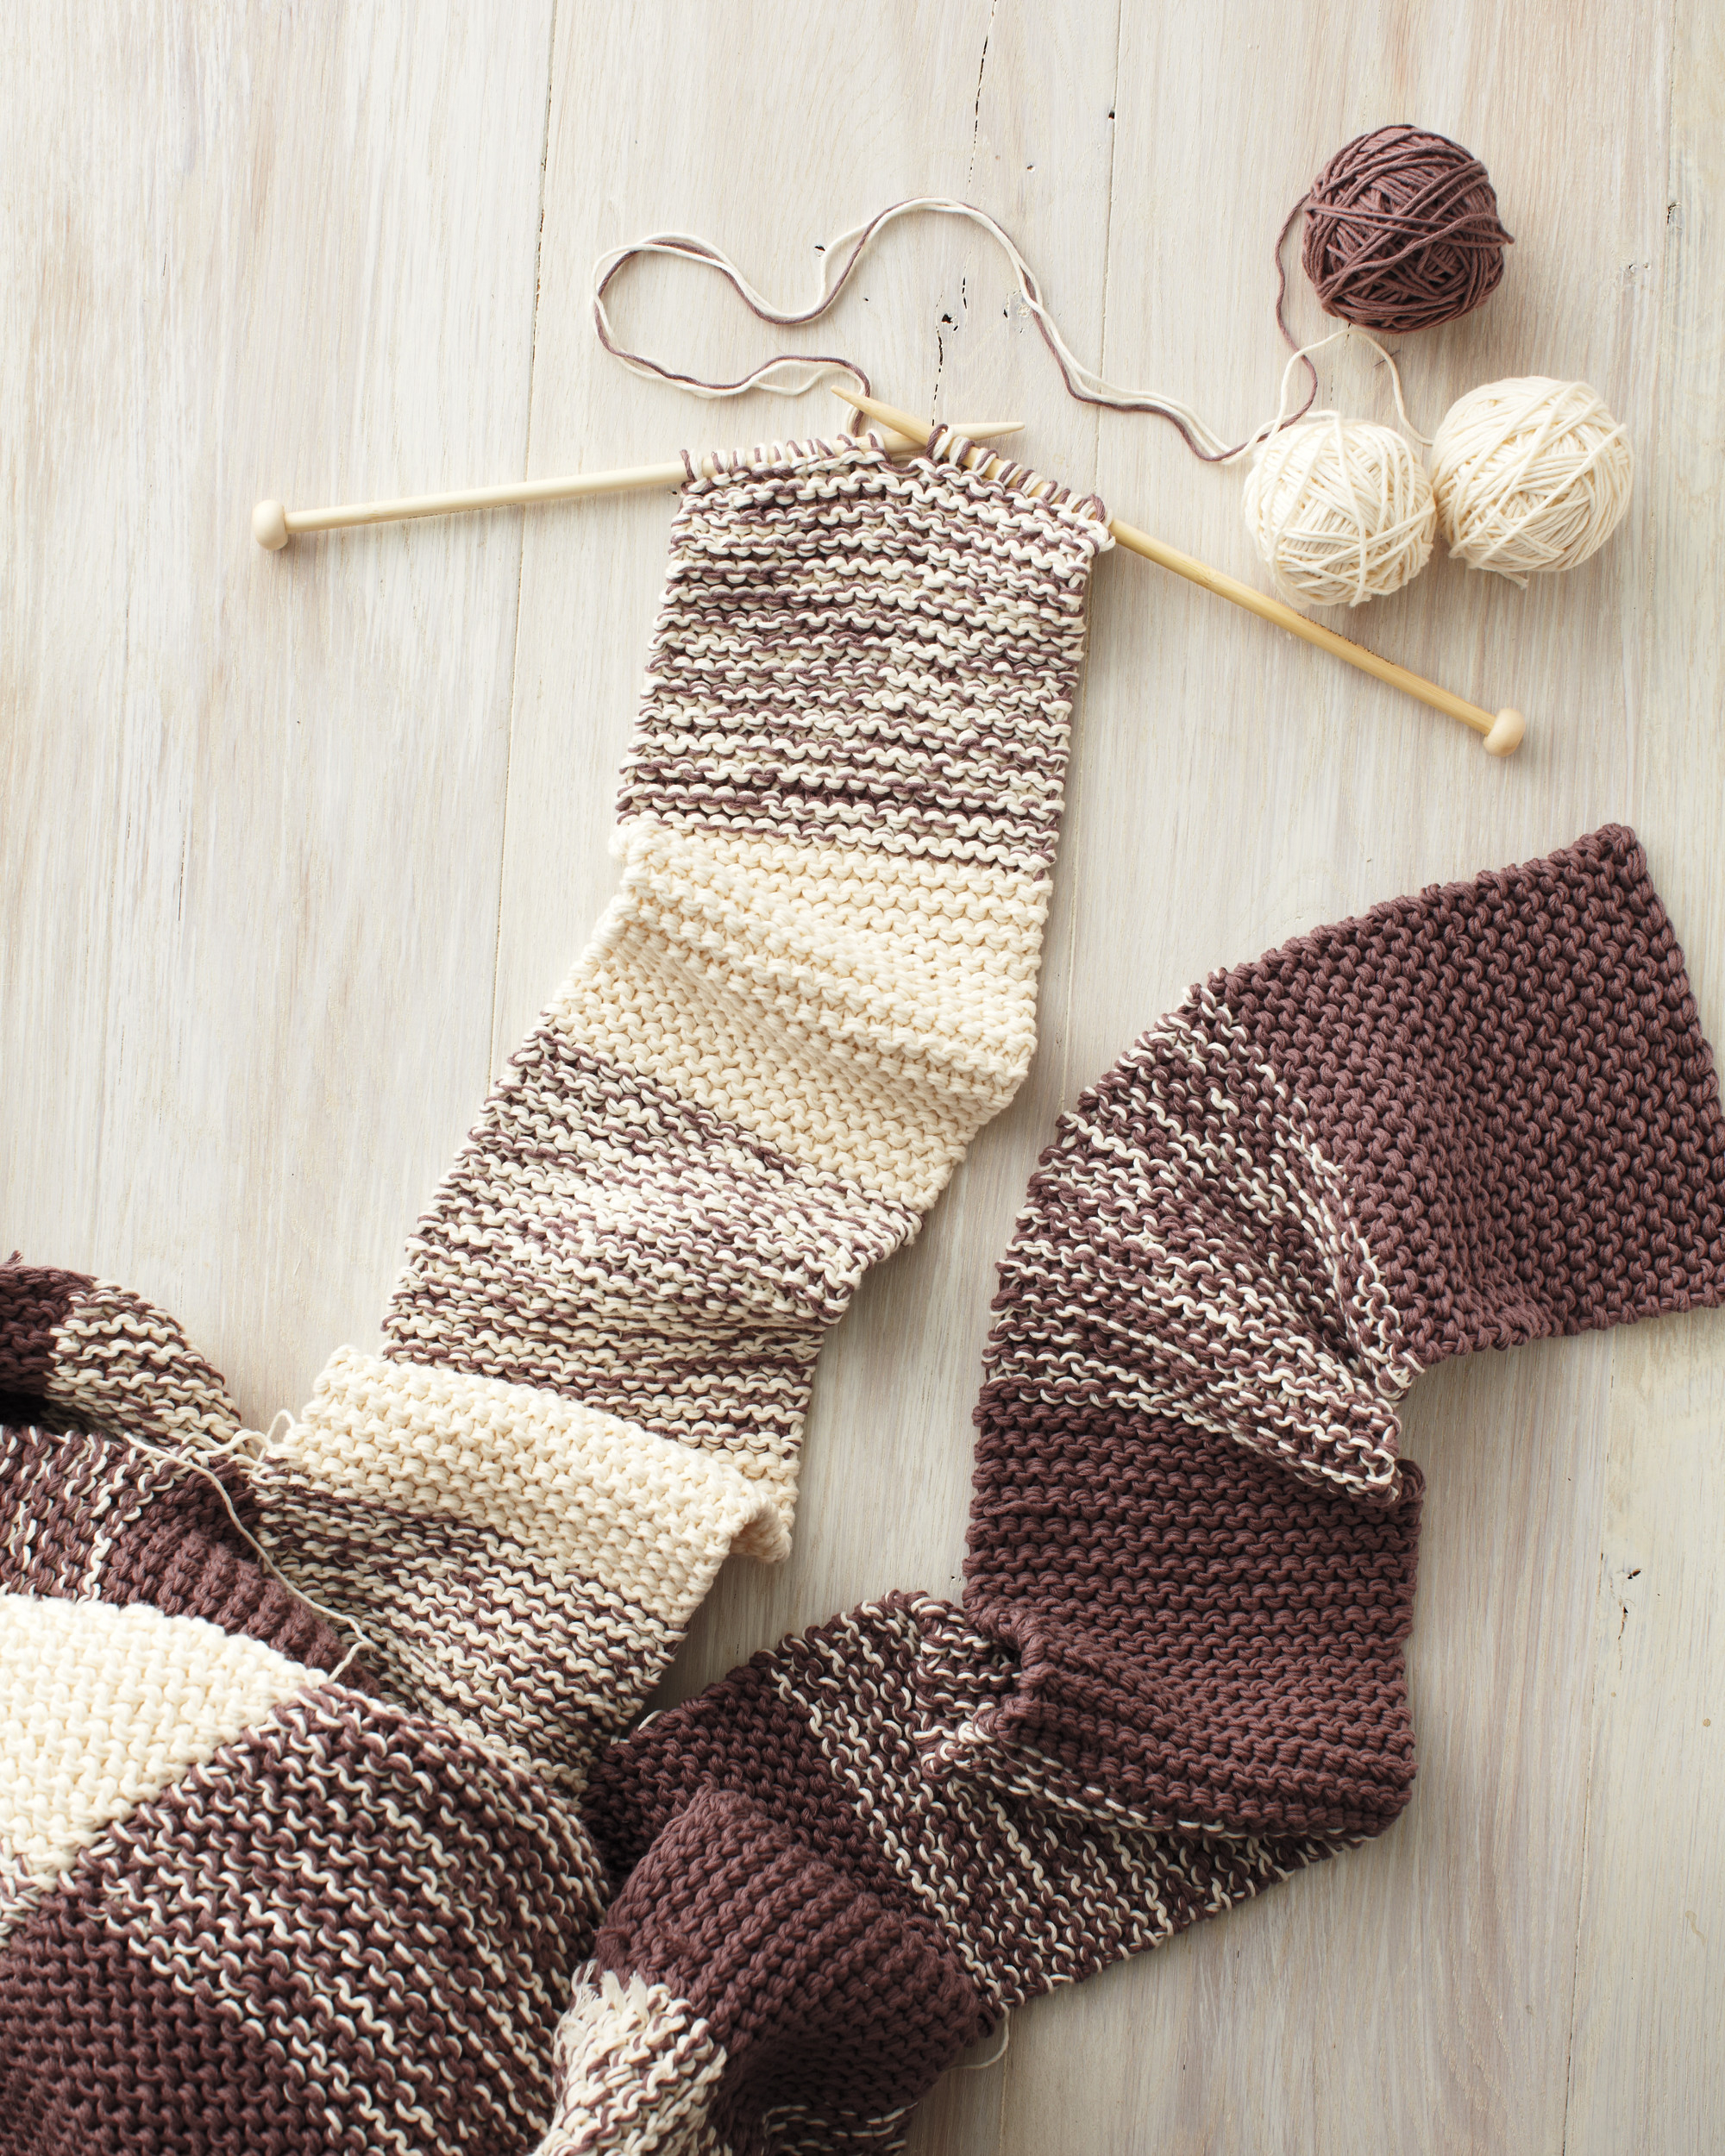 Free Knitting Patterns For Teens Knitting Patterns For Beginners Martha Stewart